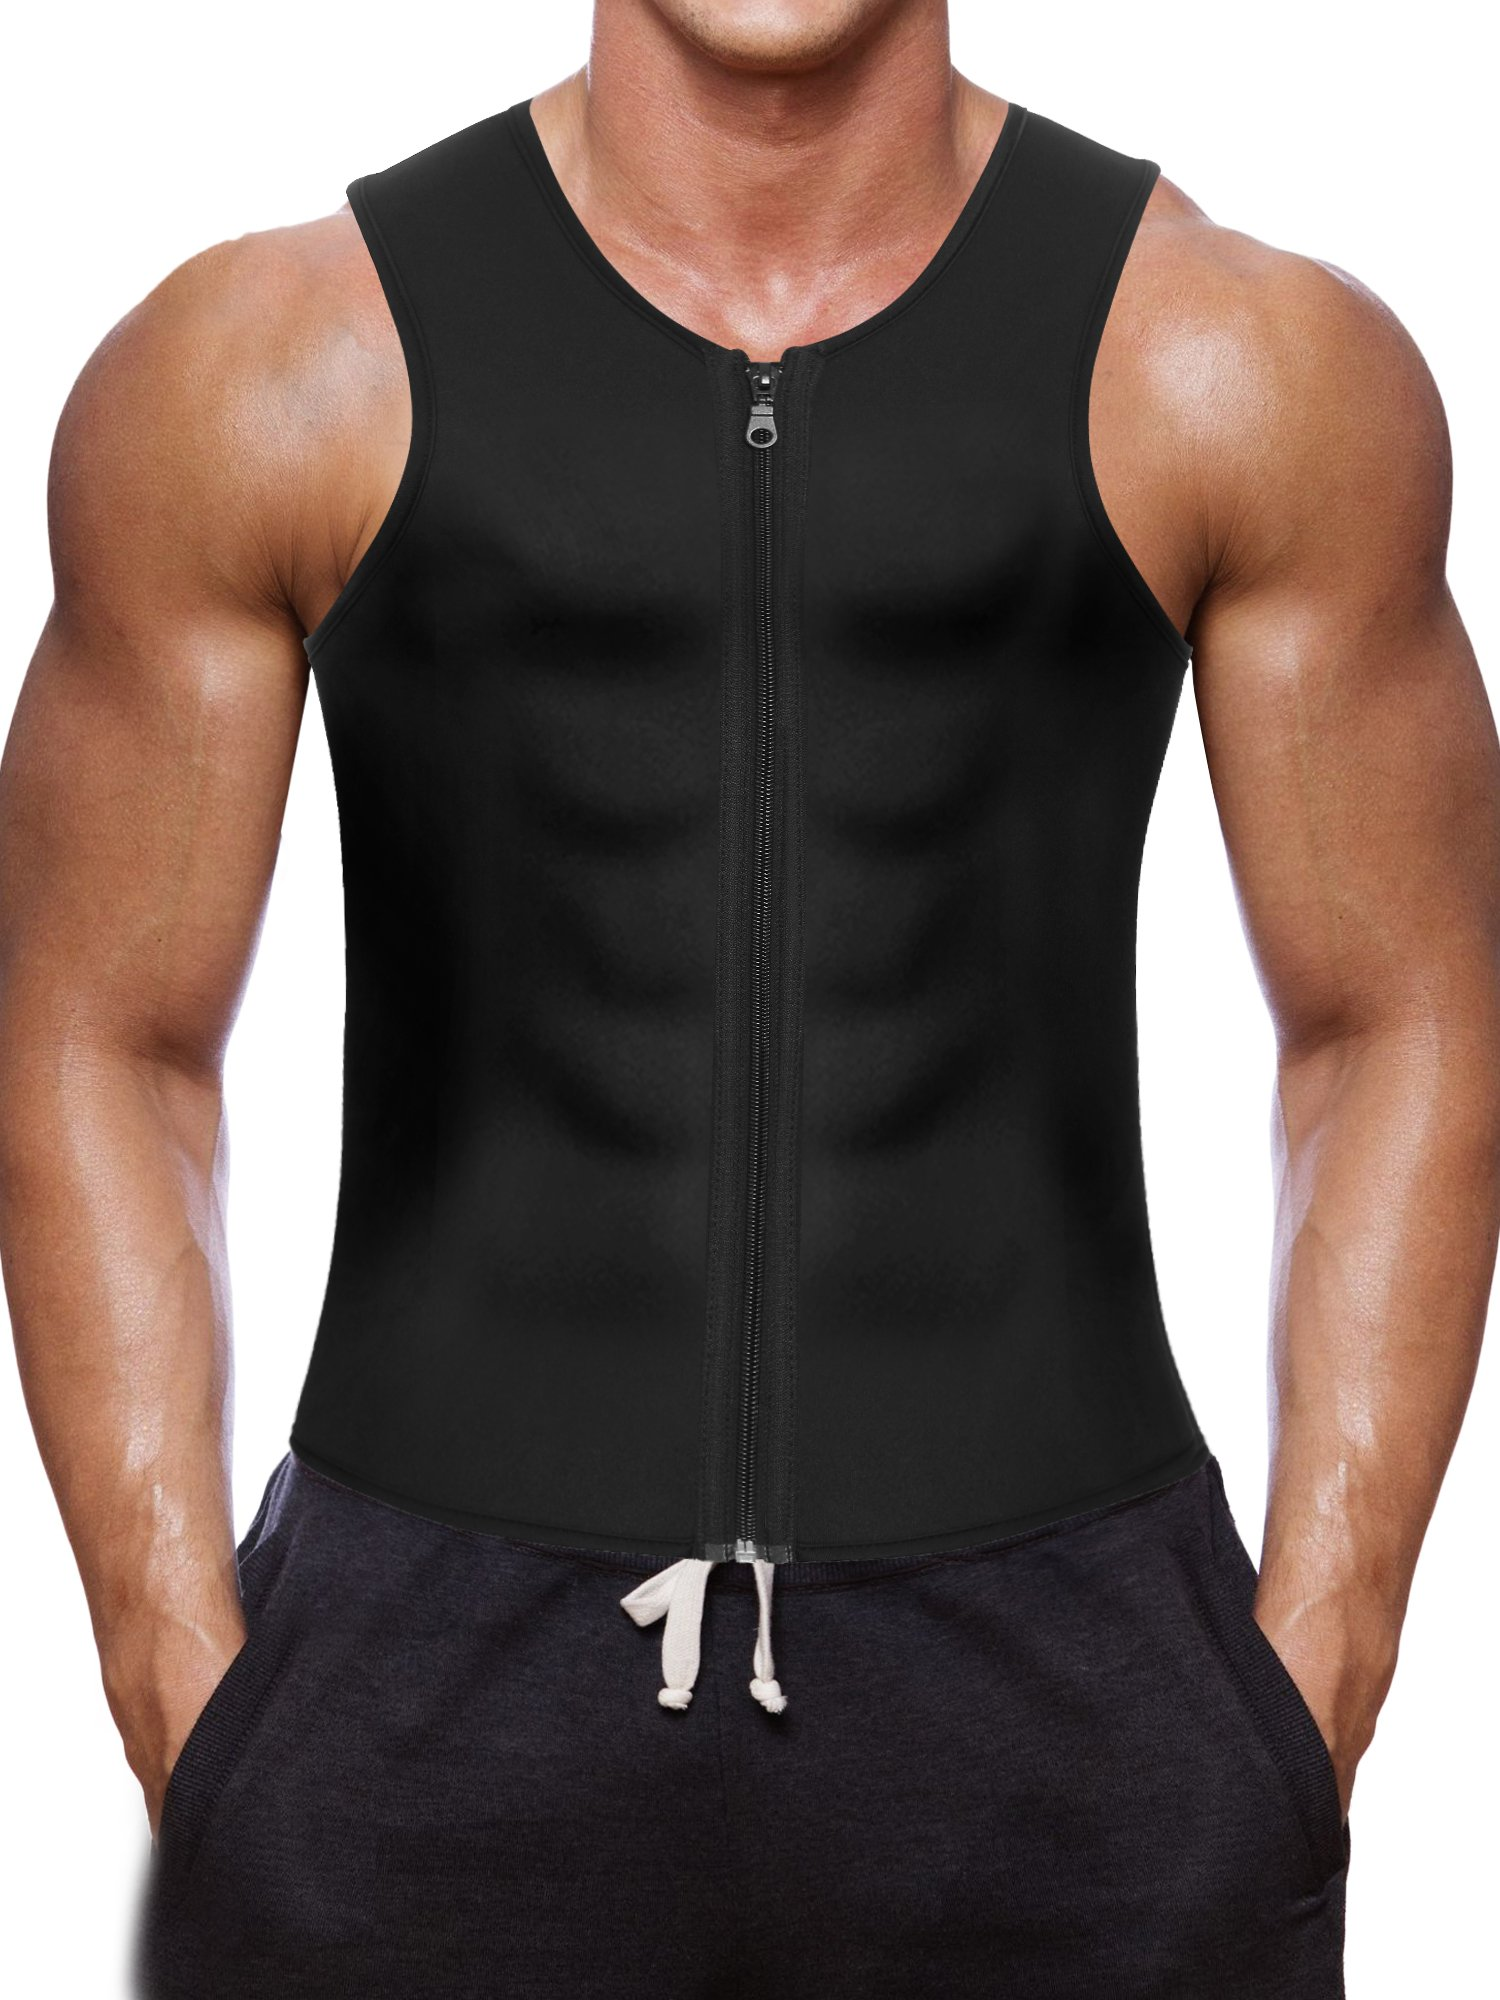 Men Waist Trainer Vest for Weightloss Hot Neoprene Corset Body Shaper Zipper Sauna Tank Top Workout Shirt (S, Black Neoprene Slimming Vest)